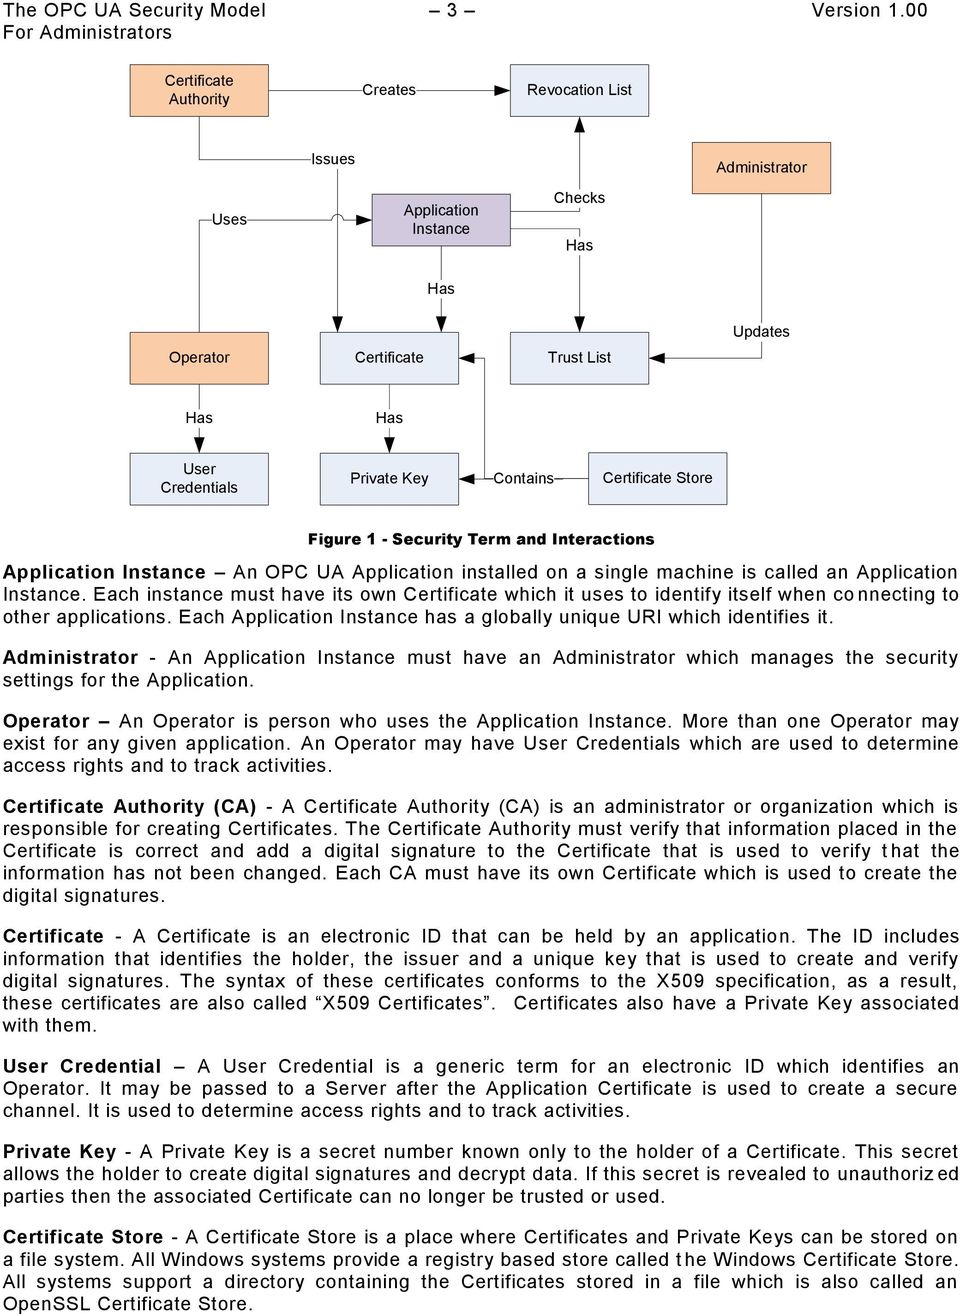 The Opc Ua Security Model For Administrators Whitepaper Version Pdf